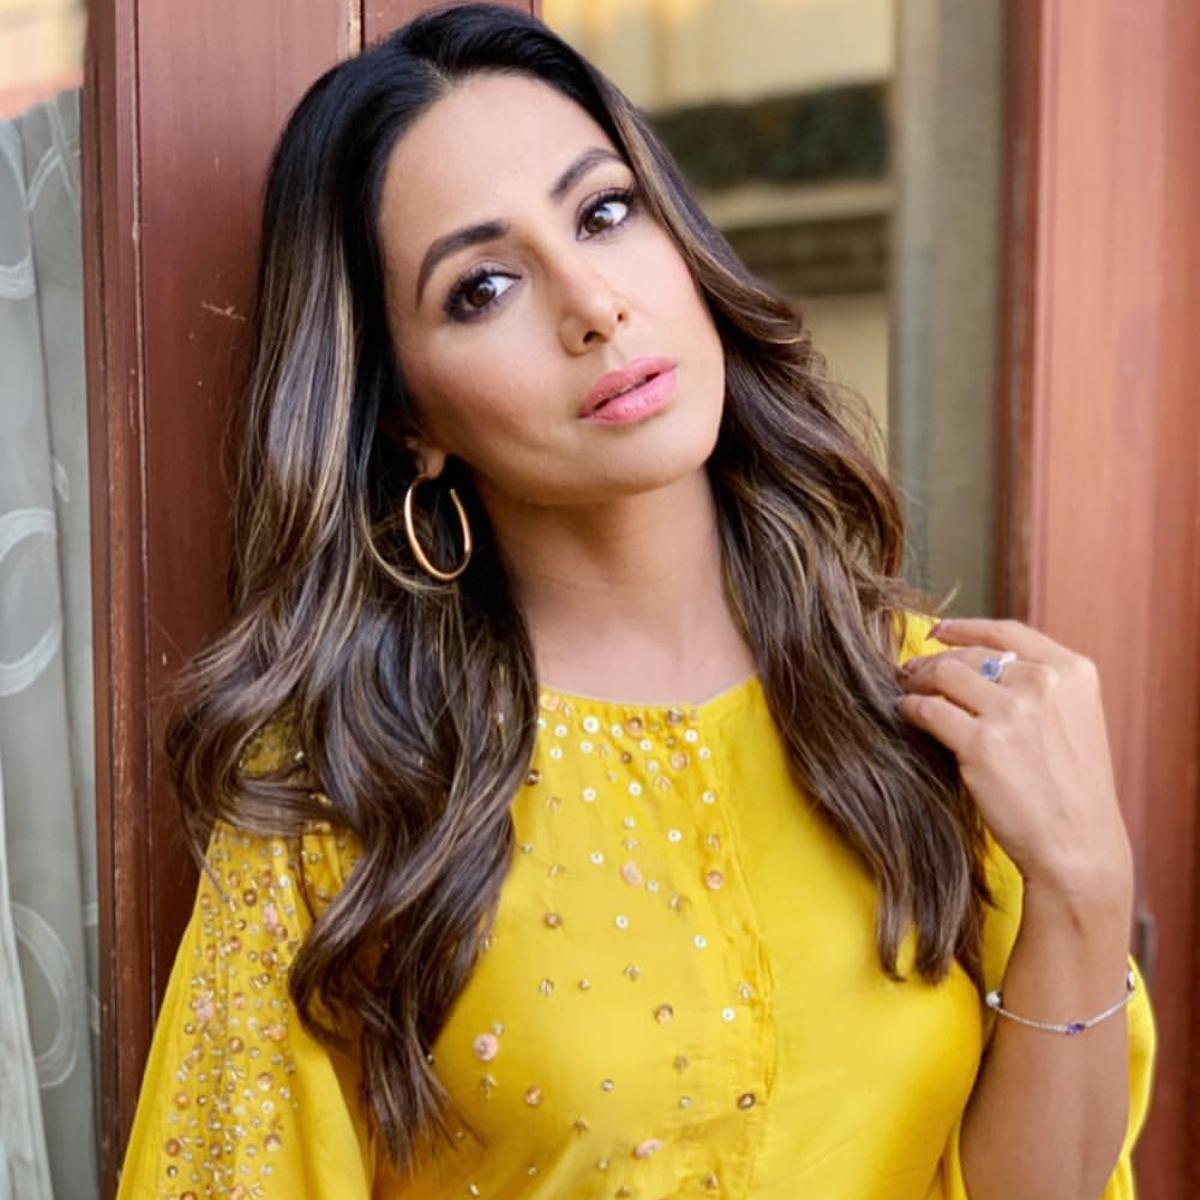 Hina Khan follows THESE beauty rules to keep her skin glowing